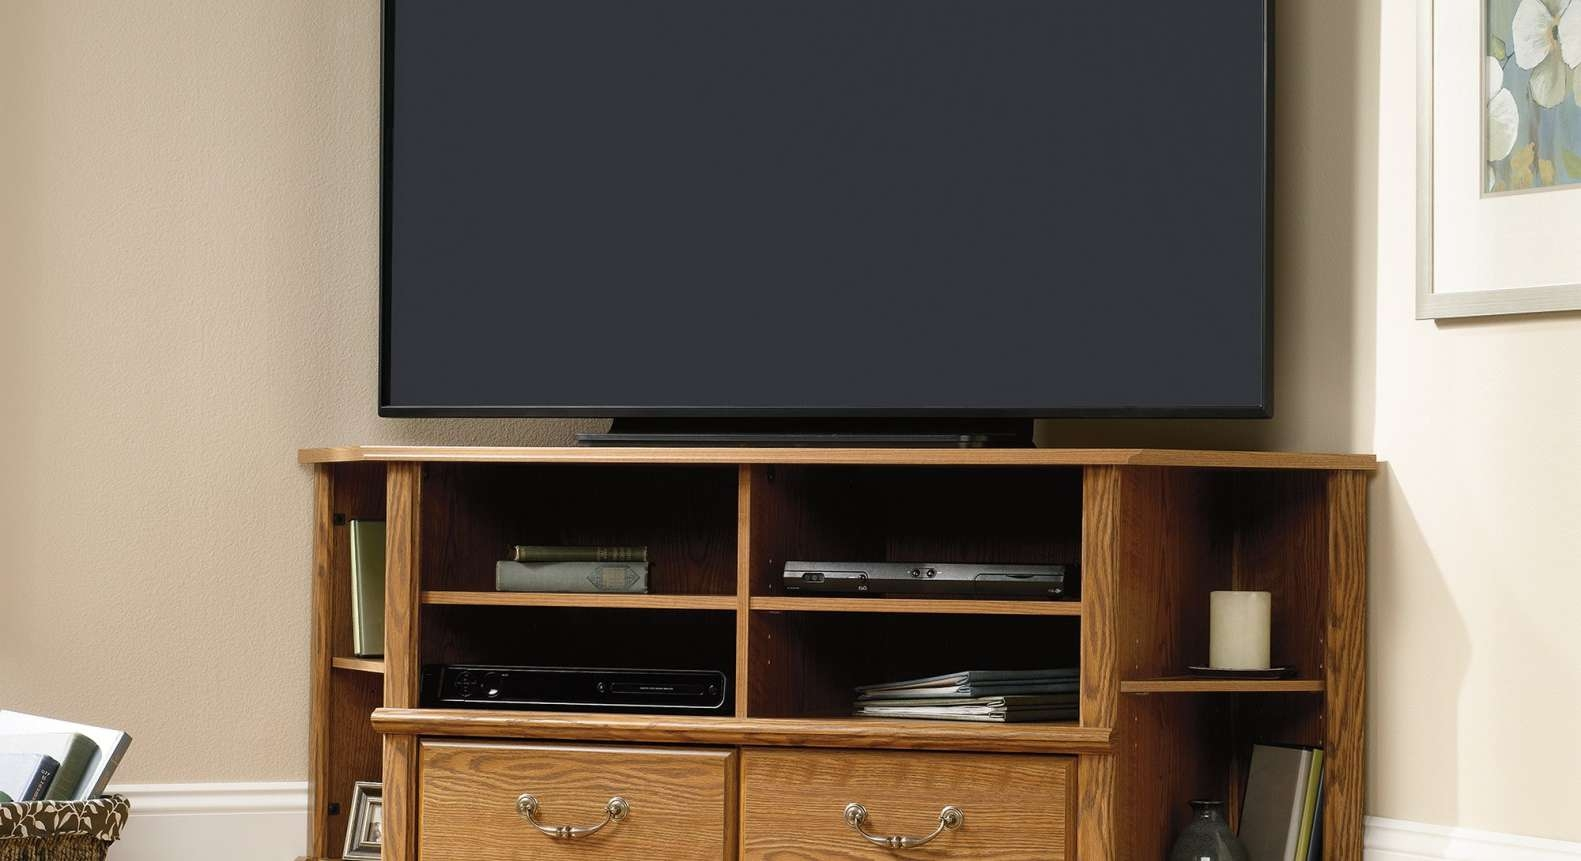 Cabinet : Uk Cf White Corner Tv Stand Amazing Corner Media Cabinet Pertaining To Off White Corner Tv Stands (View 5 of 15)